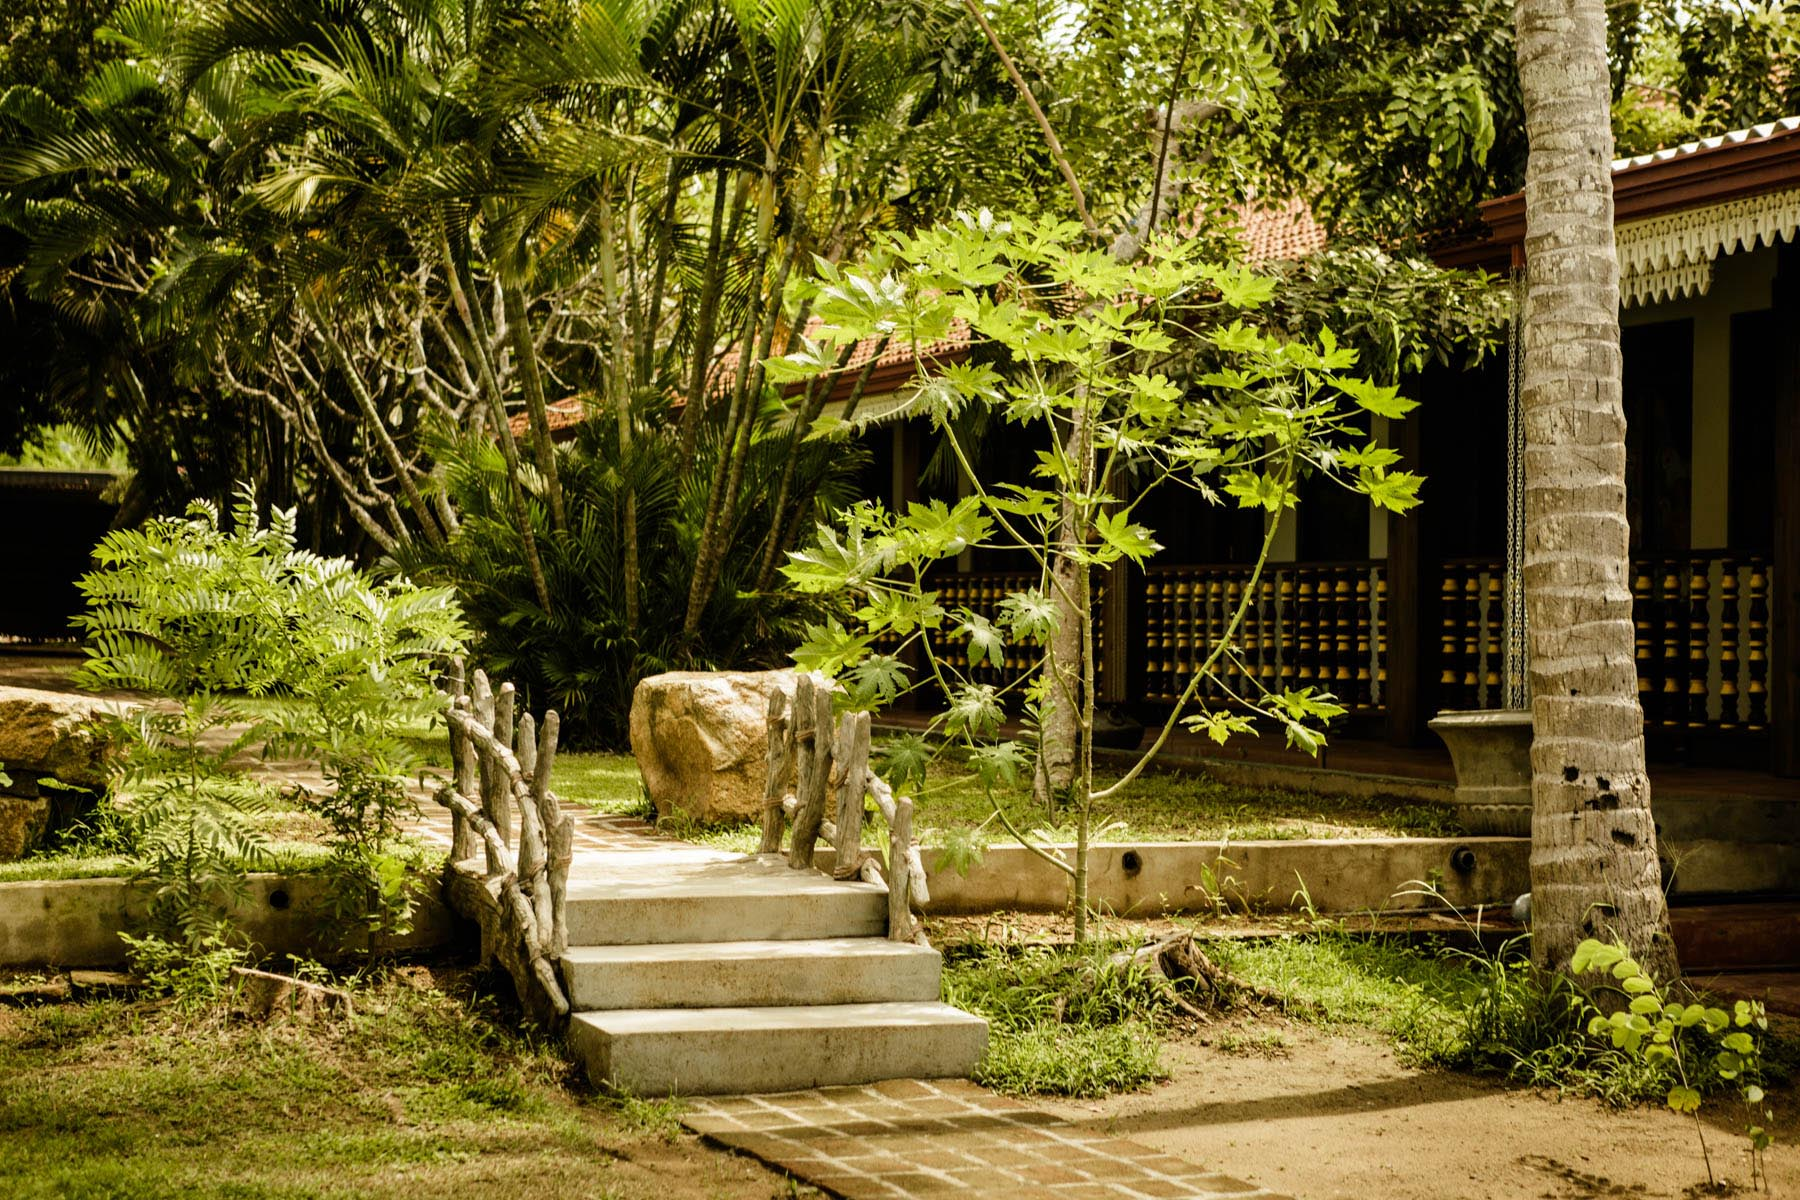 thaulle-resort-sri-lanka-garden-green-philosophie-ayurveda-center-2